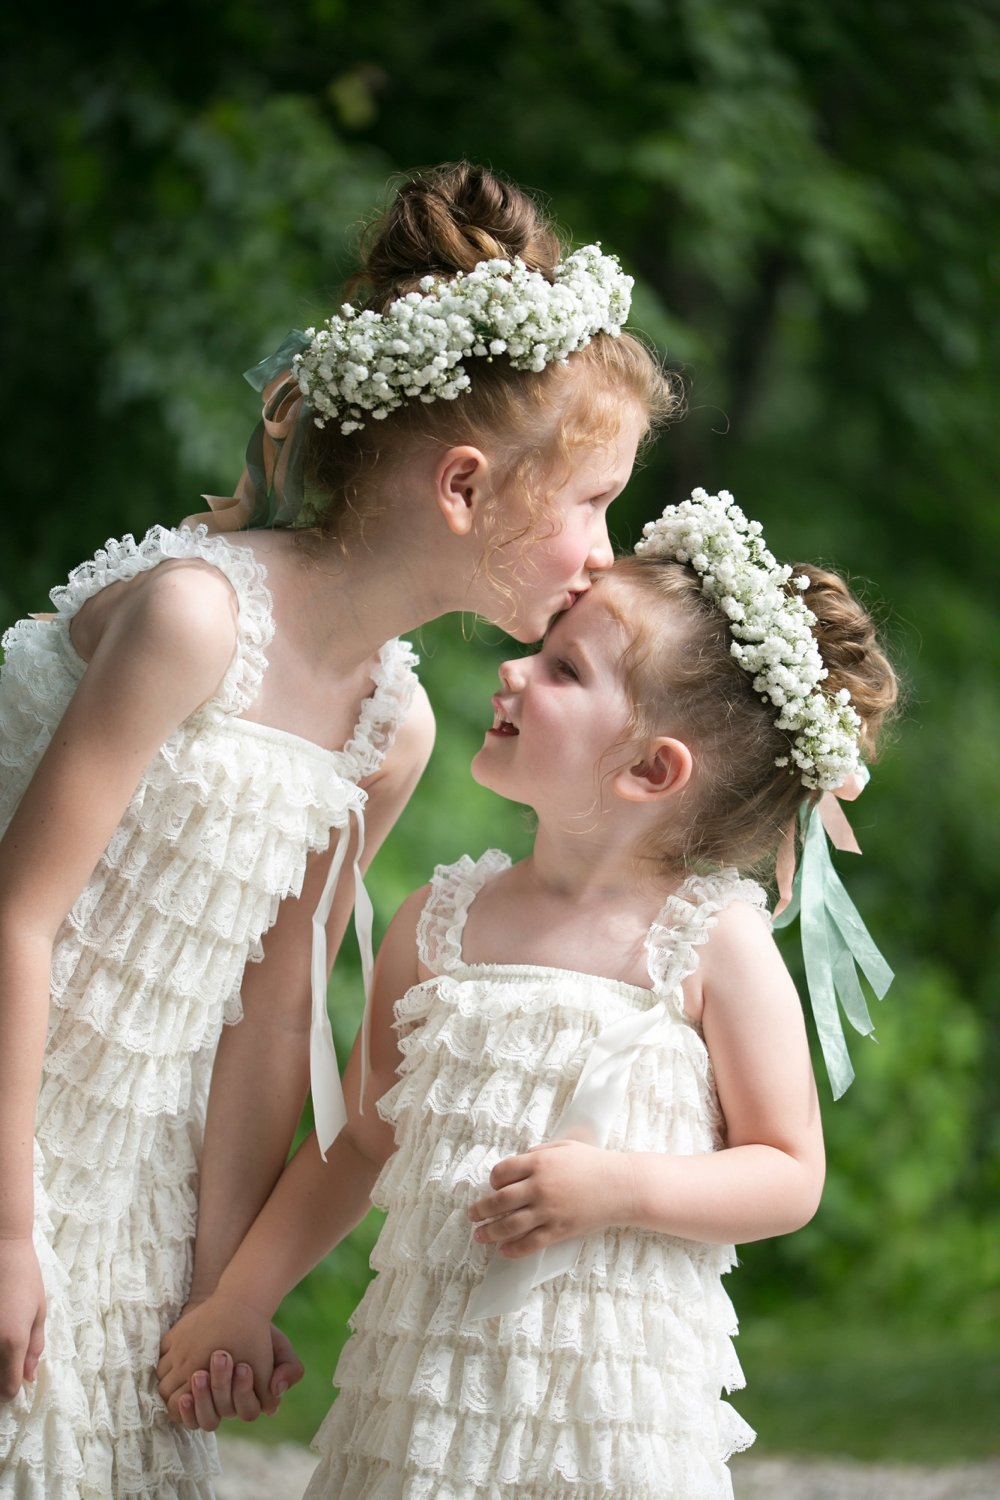 Sweet flower girls with babies breath floral crowns, in J.Crew dresses at rustic wedding in Maine